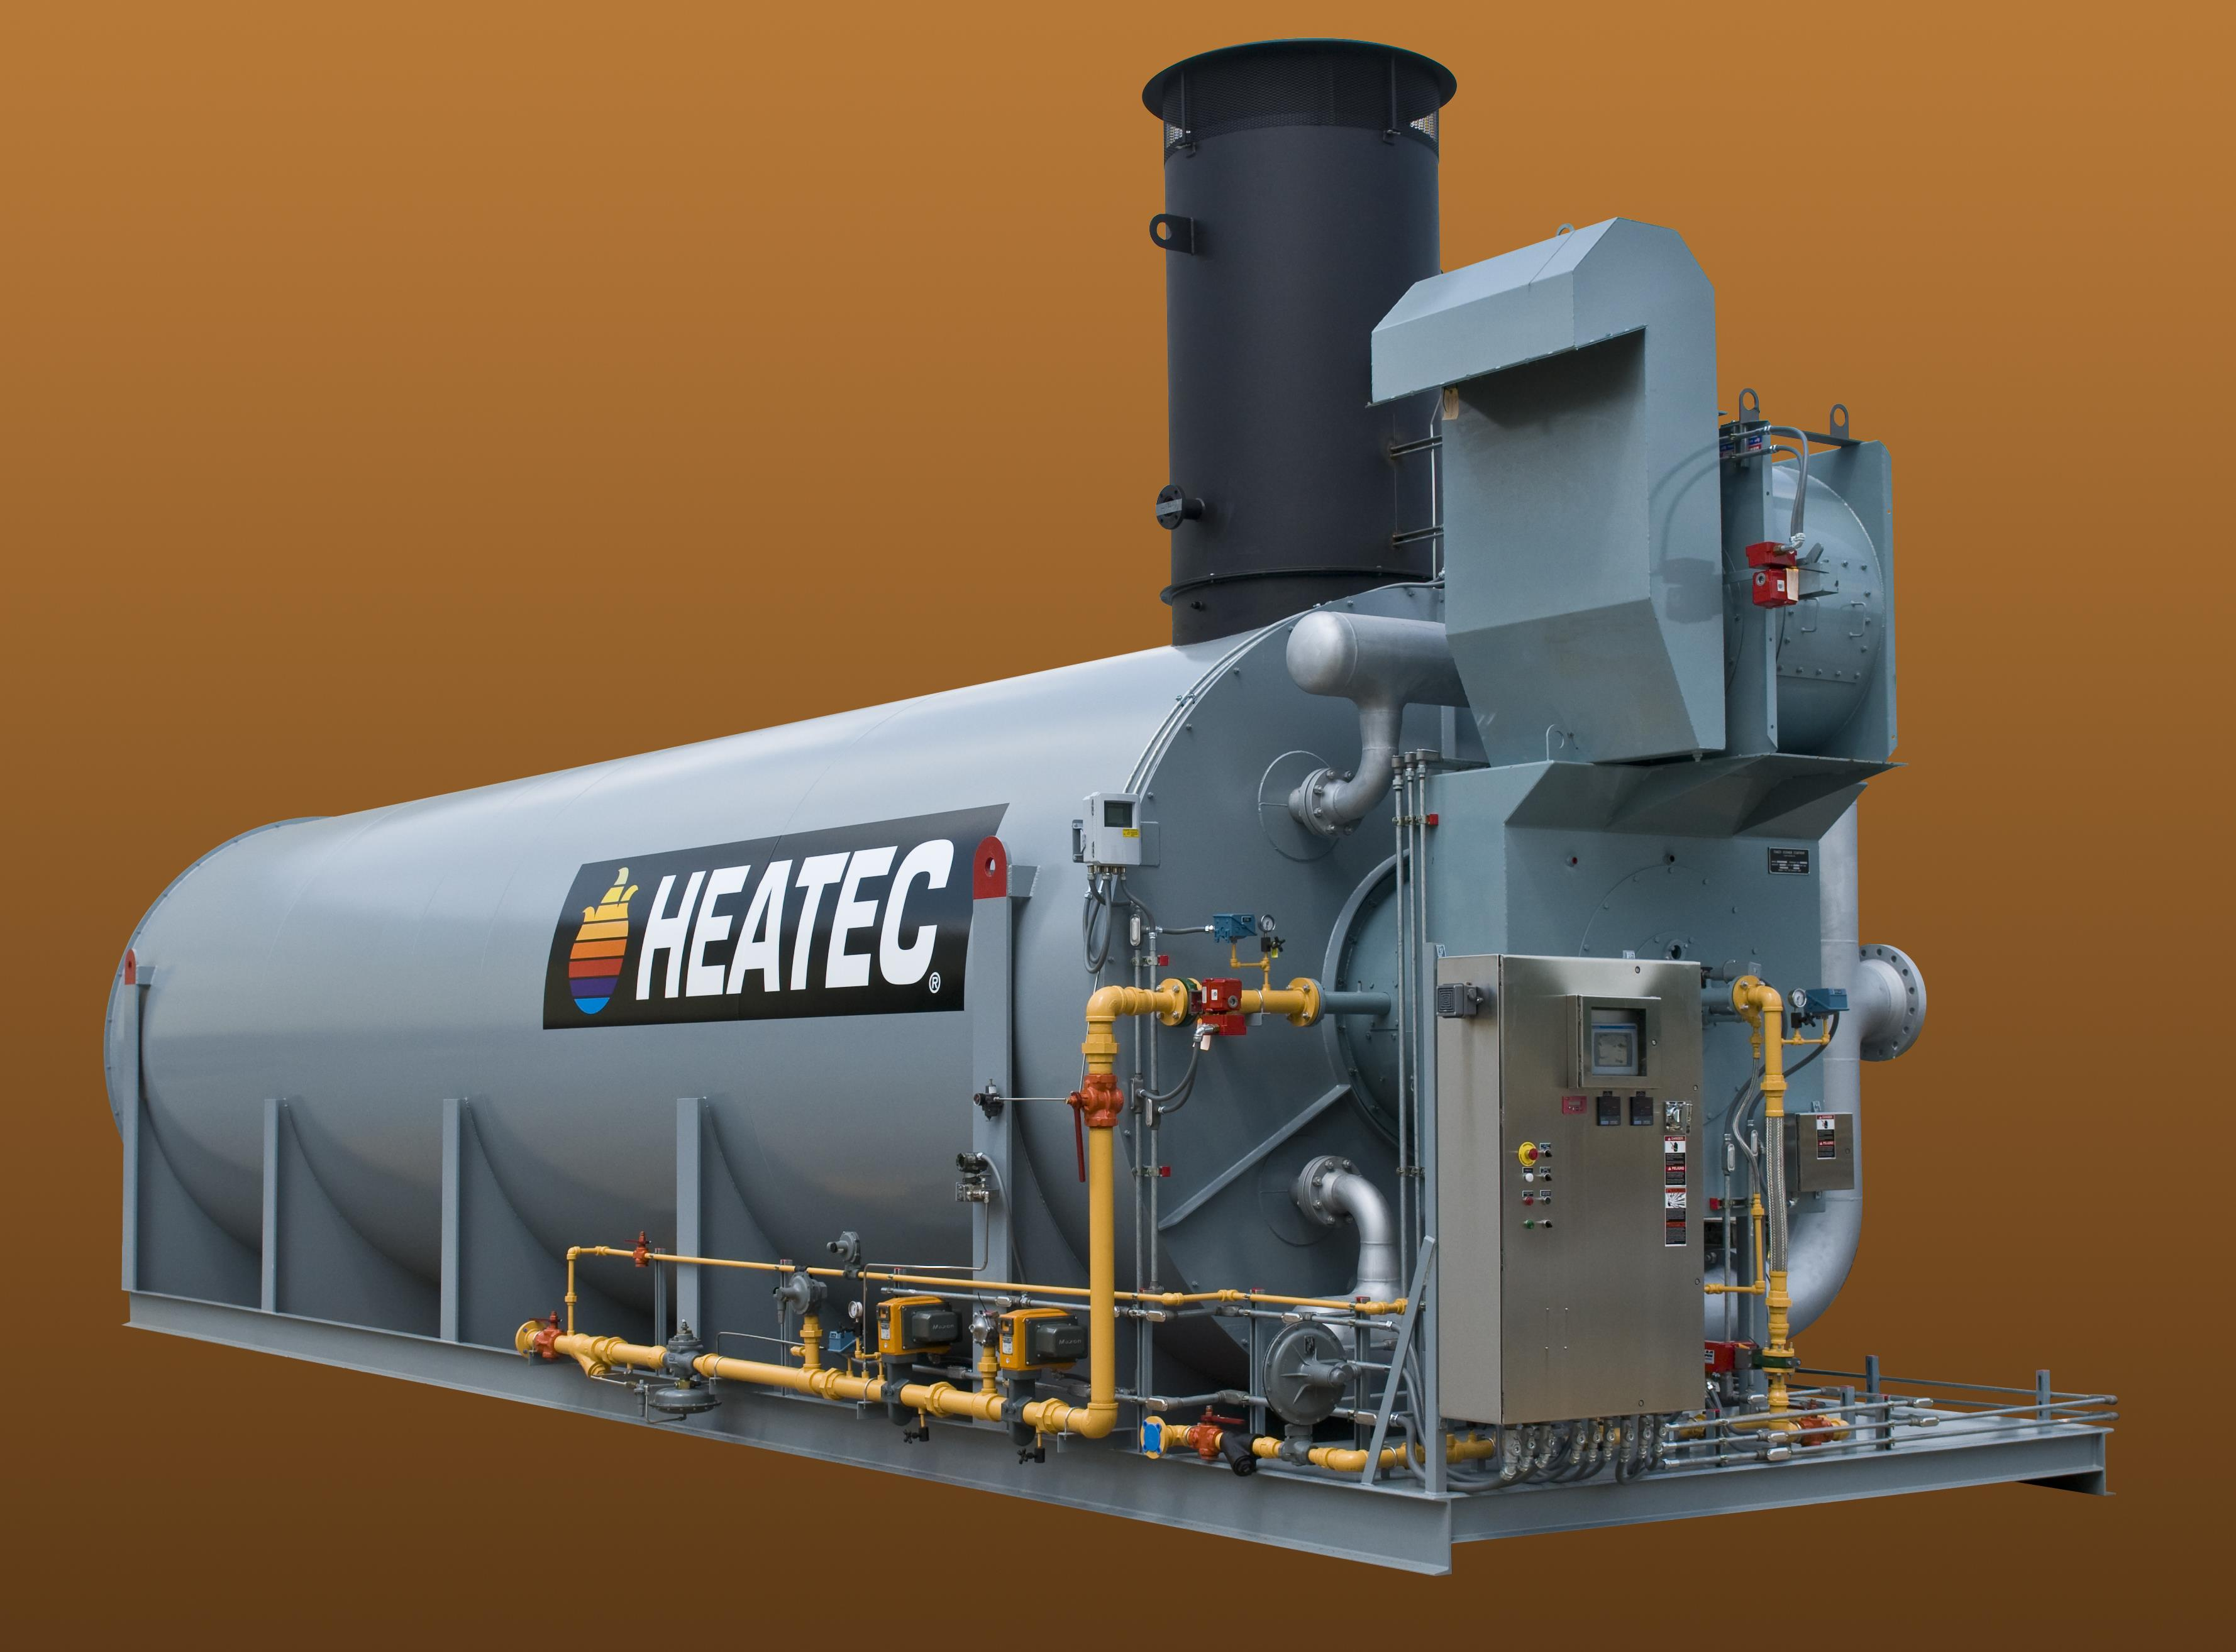 Heatec helical coil heater